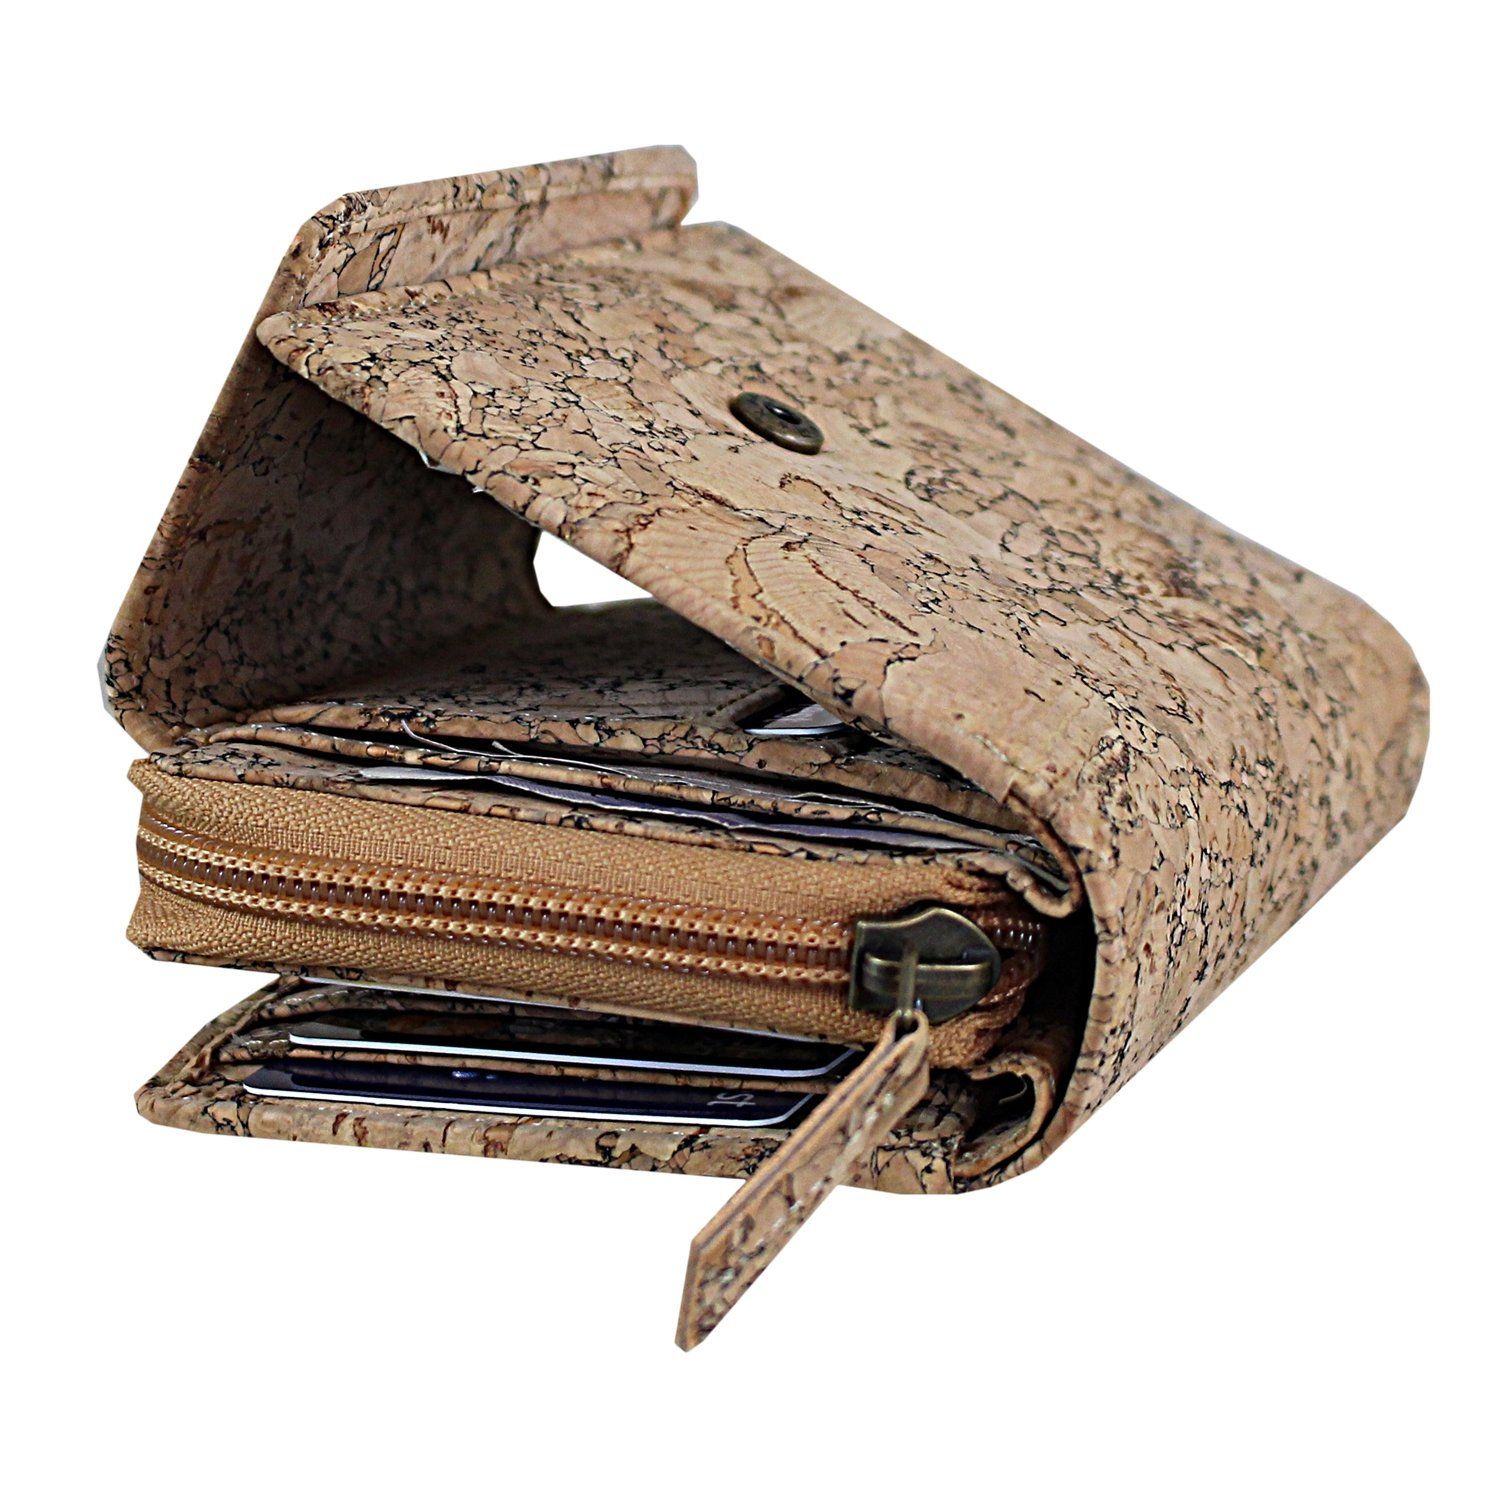 Cork Vegan Non Leather RFID Blocking Wallet Purse for Women. Made from Natural Cork – Lightweight, Stylish, Unique, Environmentally Friendly and Ethical. 11 Card Slots, ID & Zip Pocket for Coins CA-1152